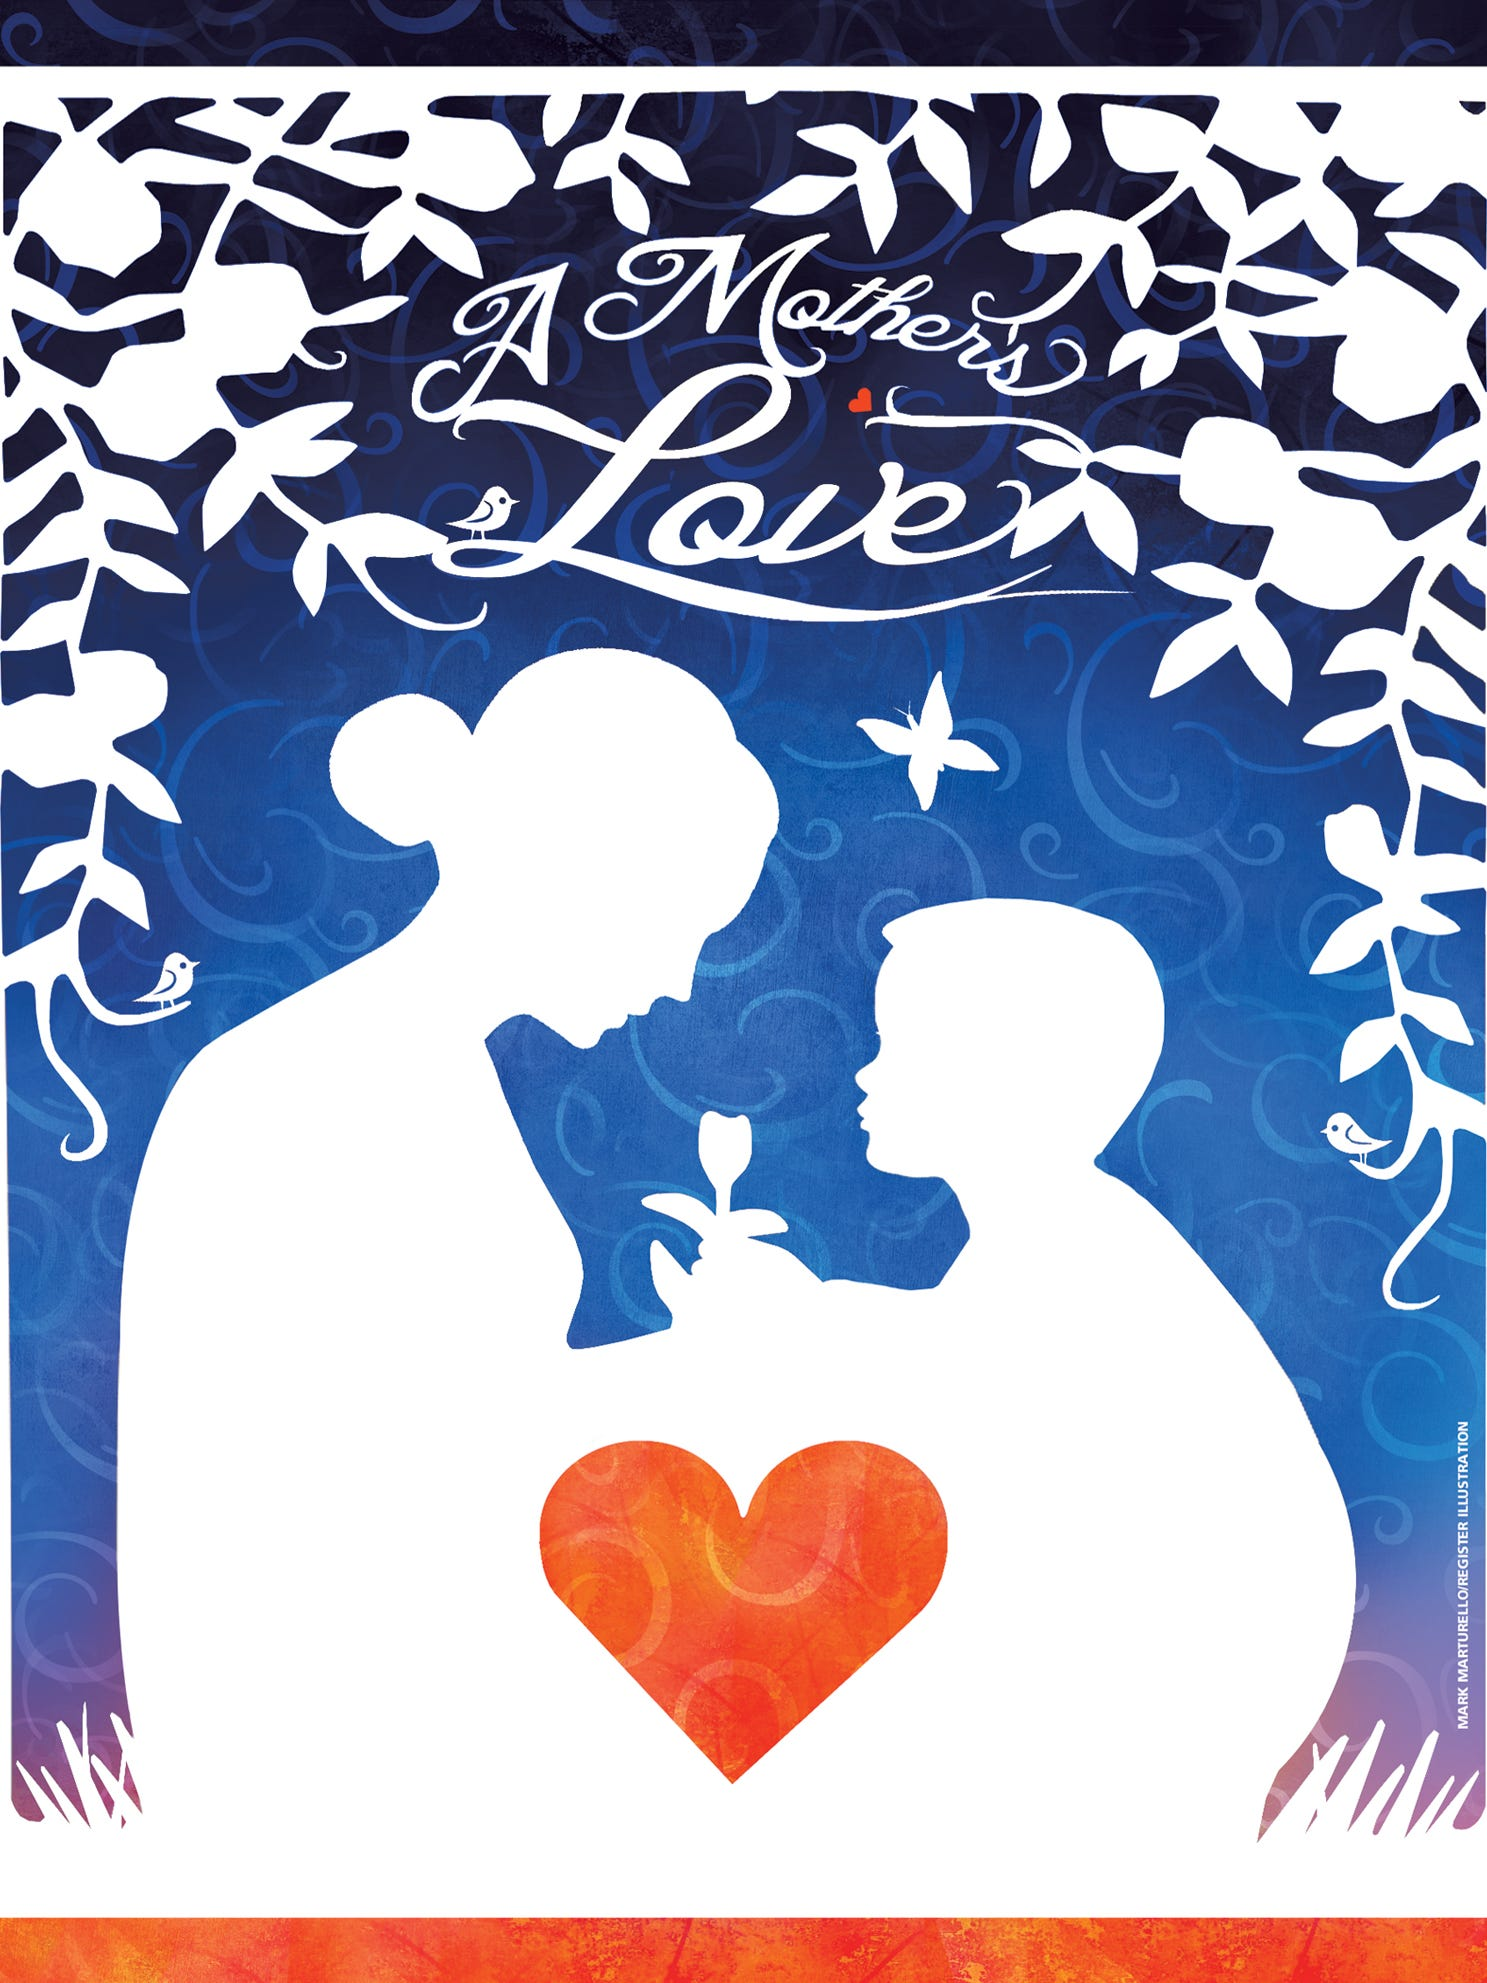 Mother goes teaher son sister all about making love 15 Stories Of A Mother S Love